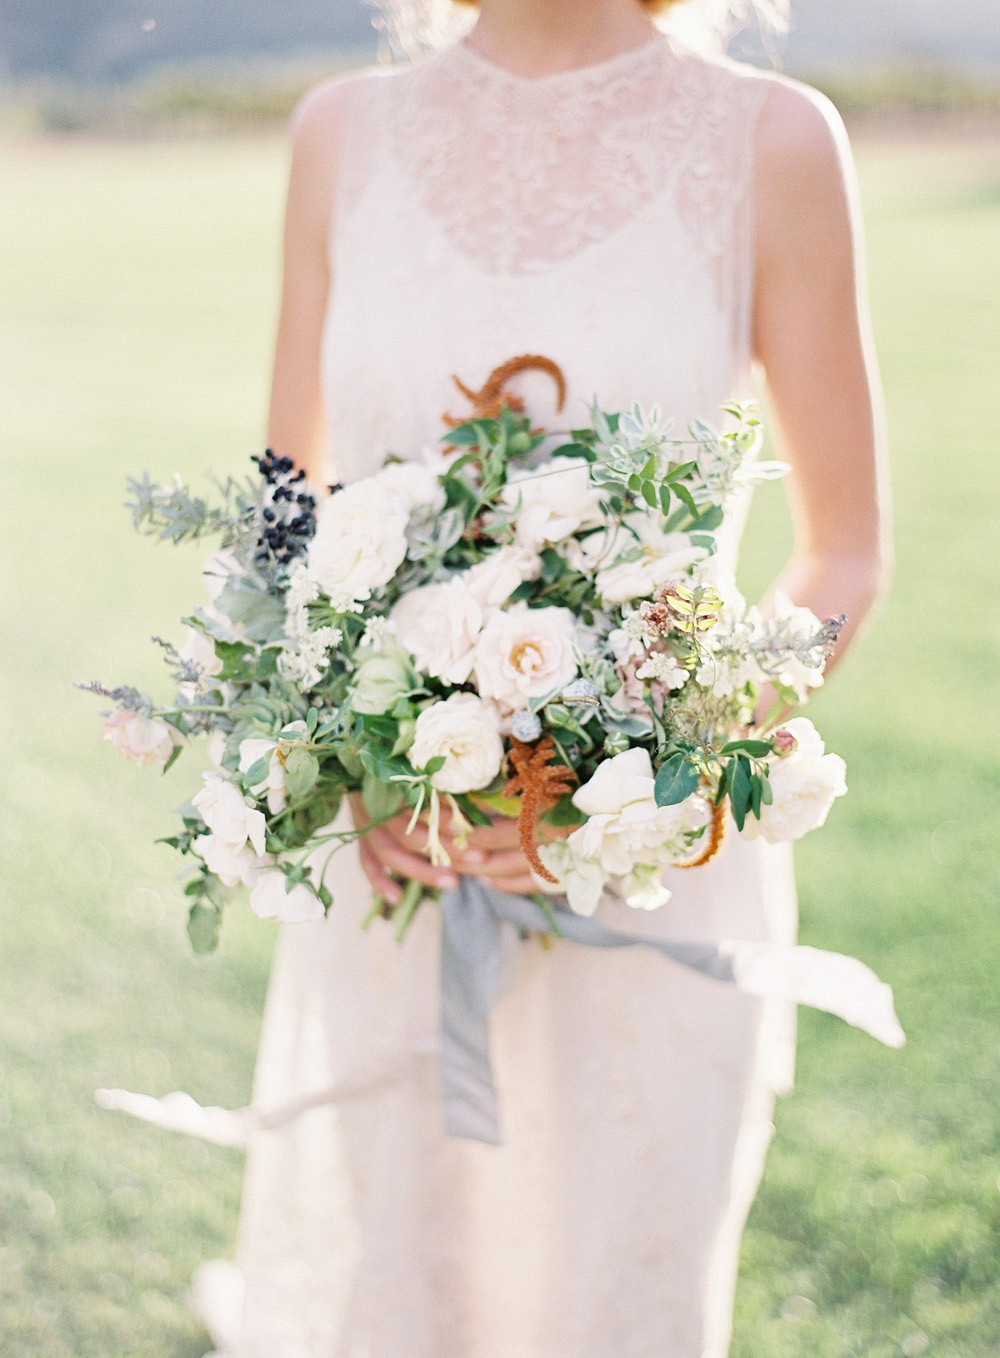 Rustic, Artisanal Countryside Farm Wedding